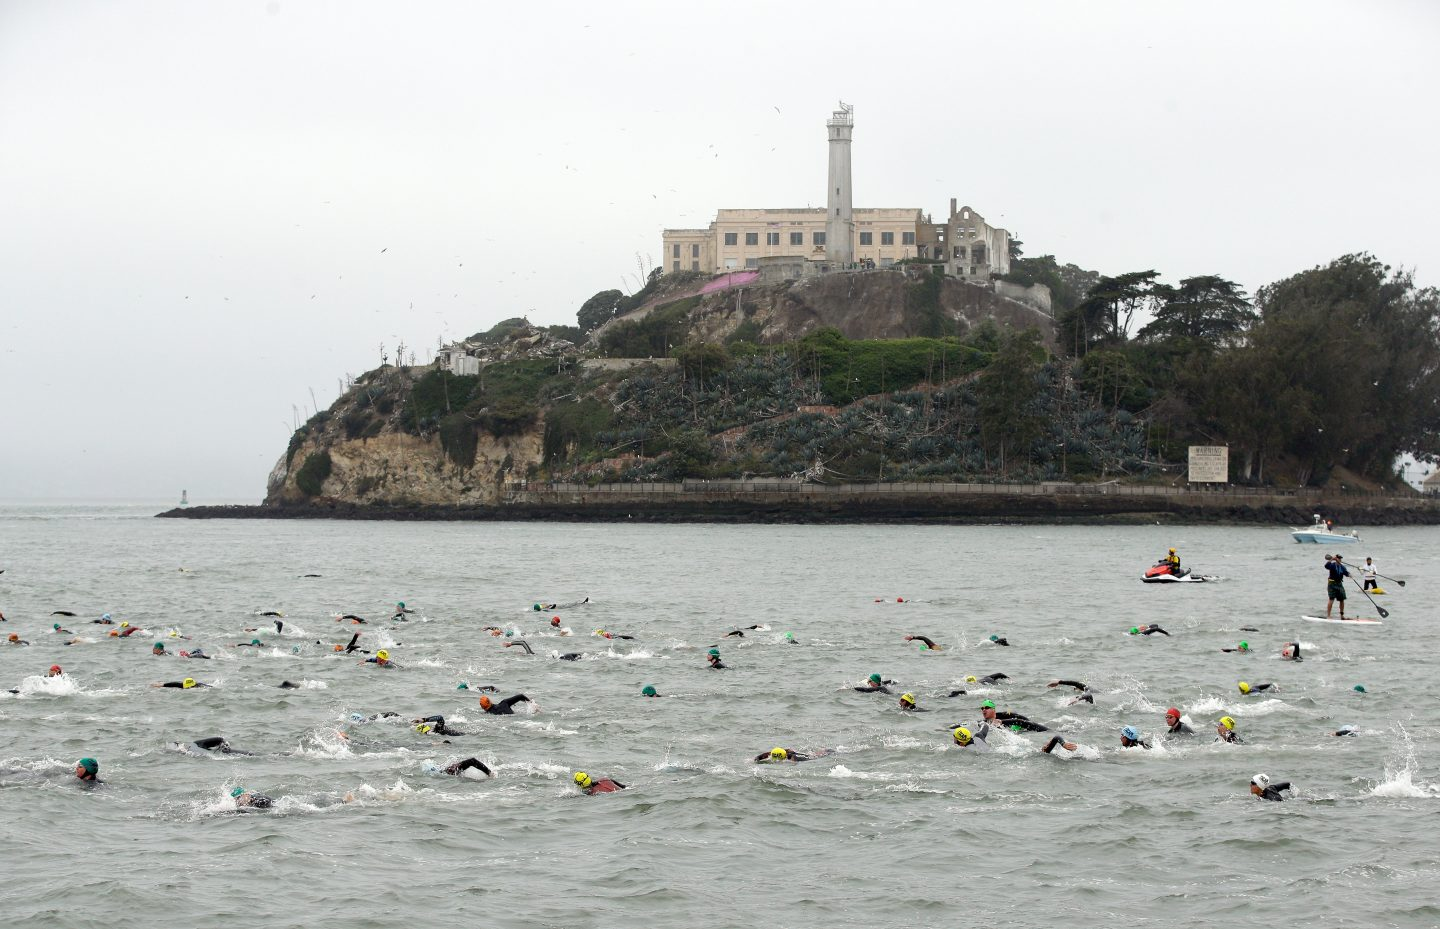 Escape from Alcatraz Triathlon_Island in the background_Swimmers in the Sea